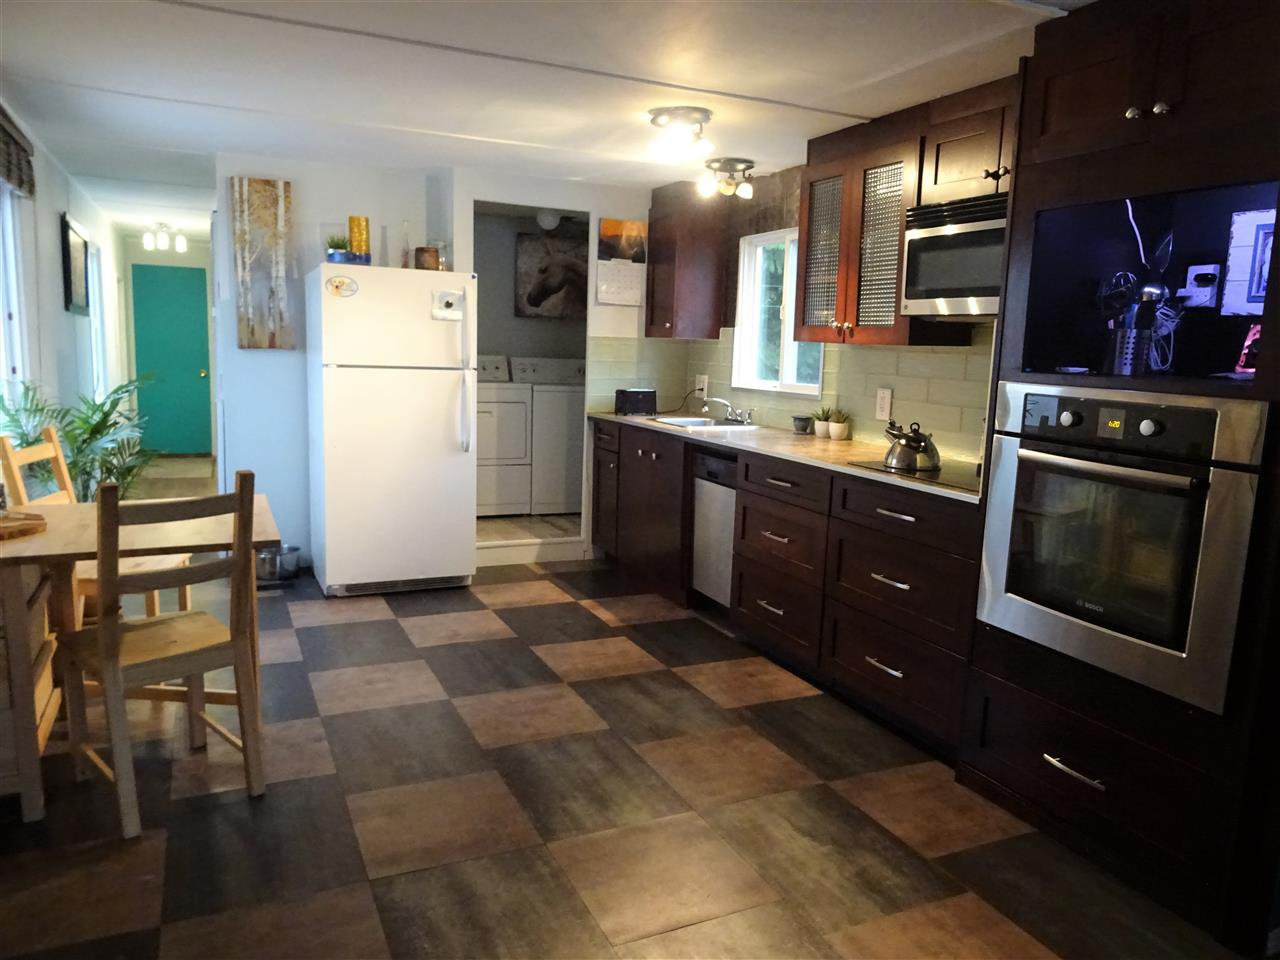 """Main Photo: 15 4200 DEWDNEY TRUNK Road in Coquitlam: Ranch Park Manufactured Home for sale in """"HIDEWAY PARK"""" : MLS®# R2124110"""